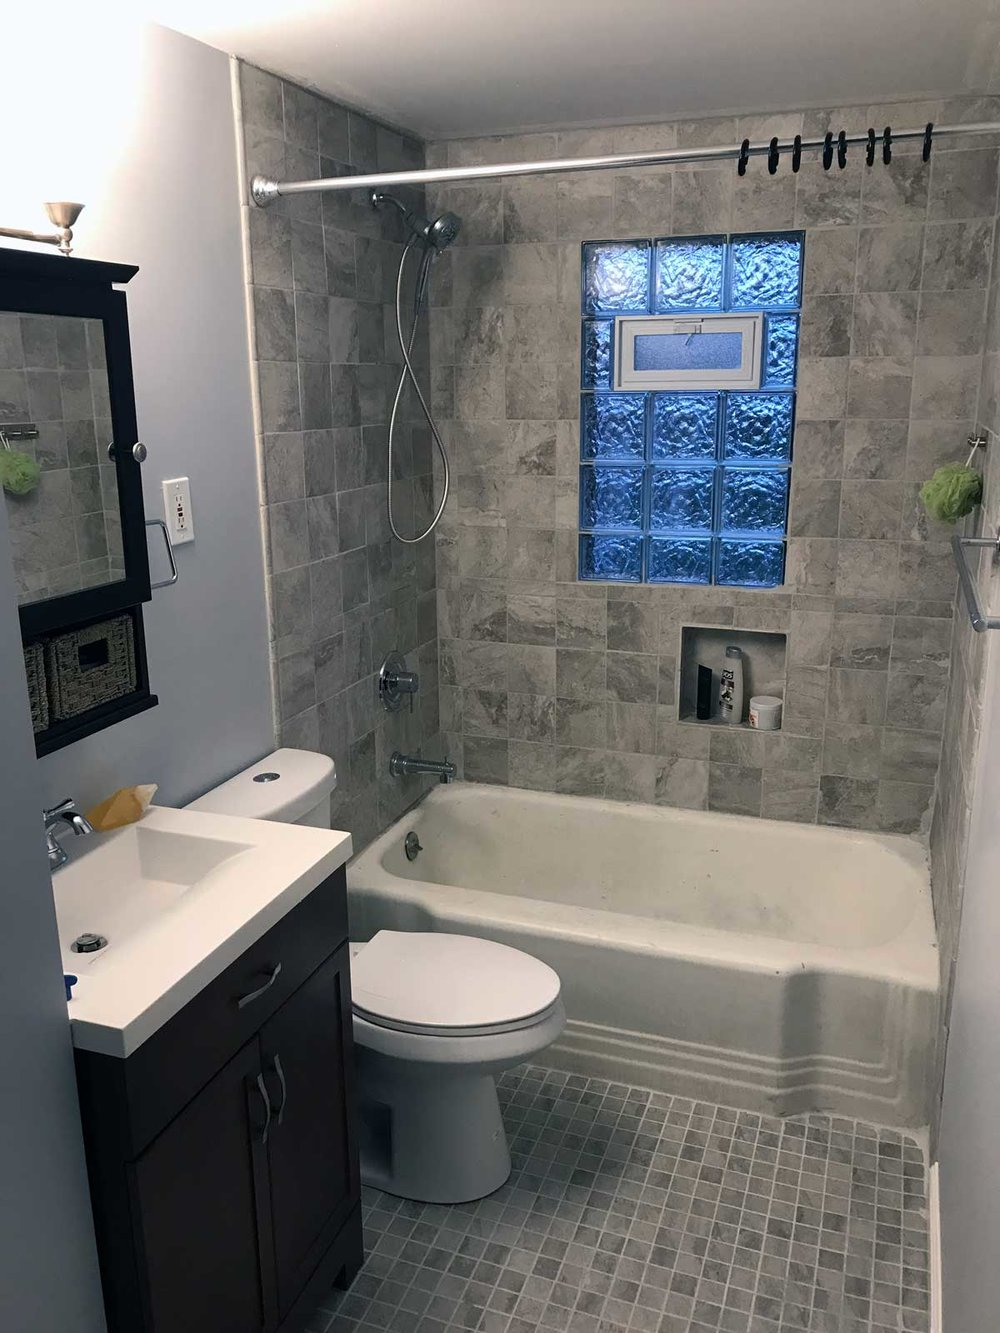 15 Day Bathroom Renovation After